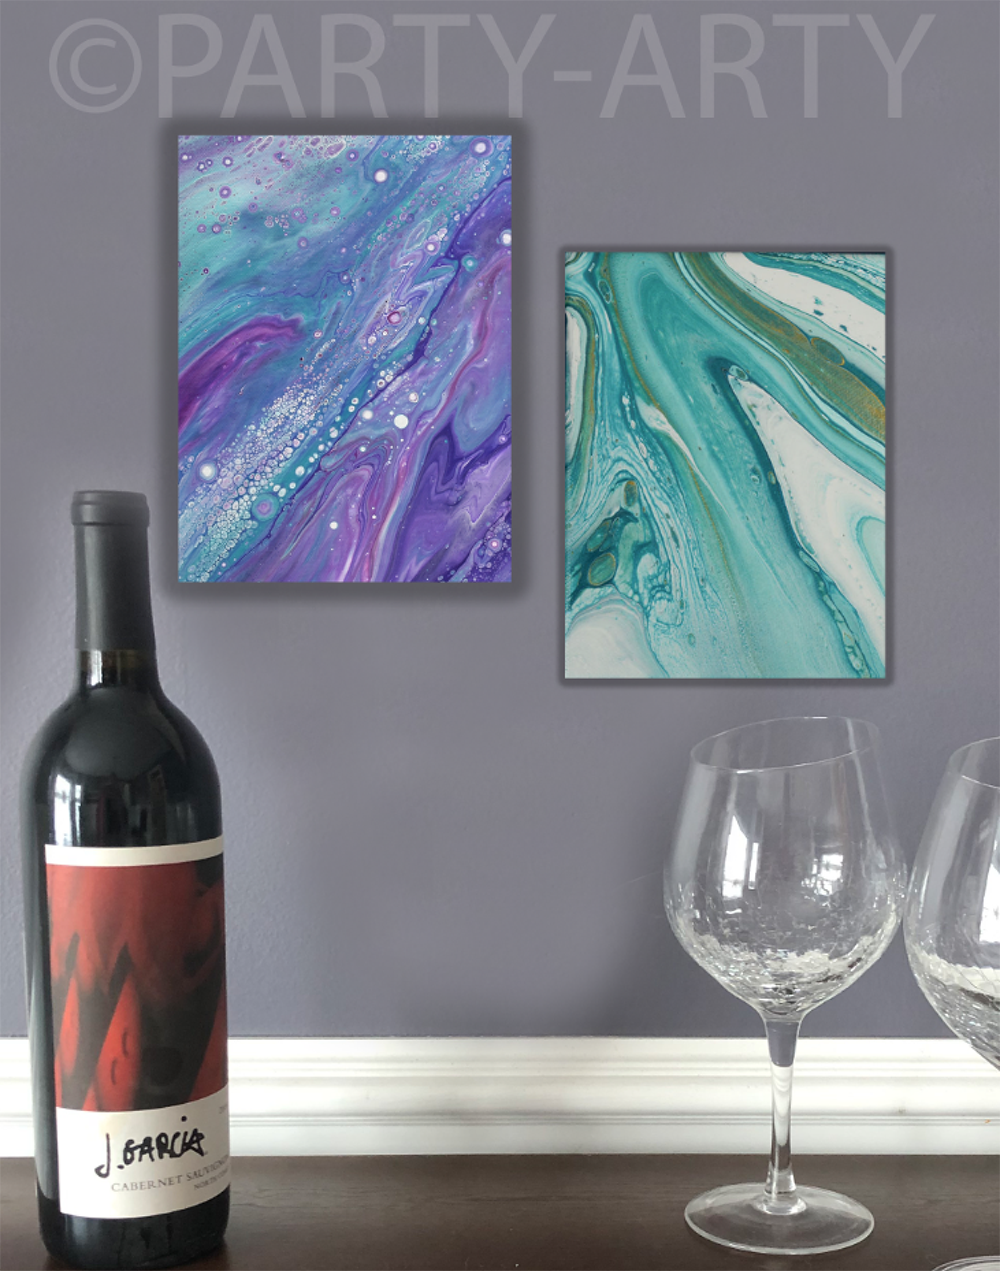 PAIR OF POUR PAINTED CANVASES - AUGUST 25  - BARREL RUN CROSSING WINERY